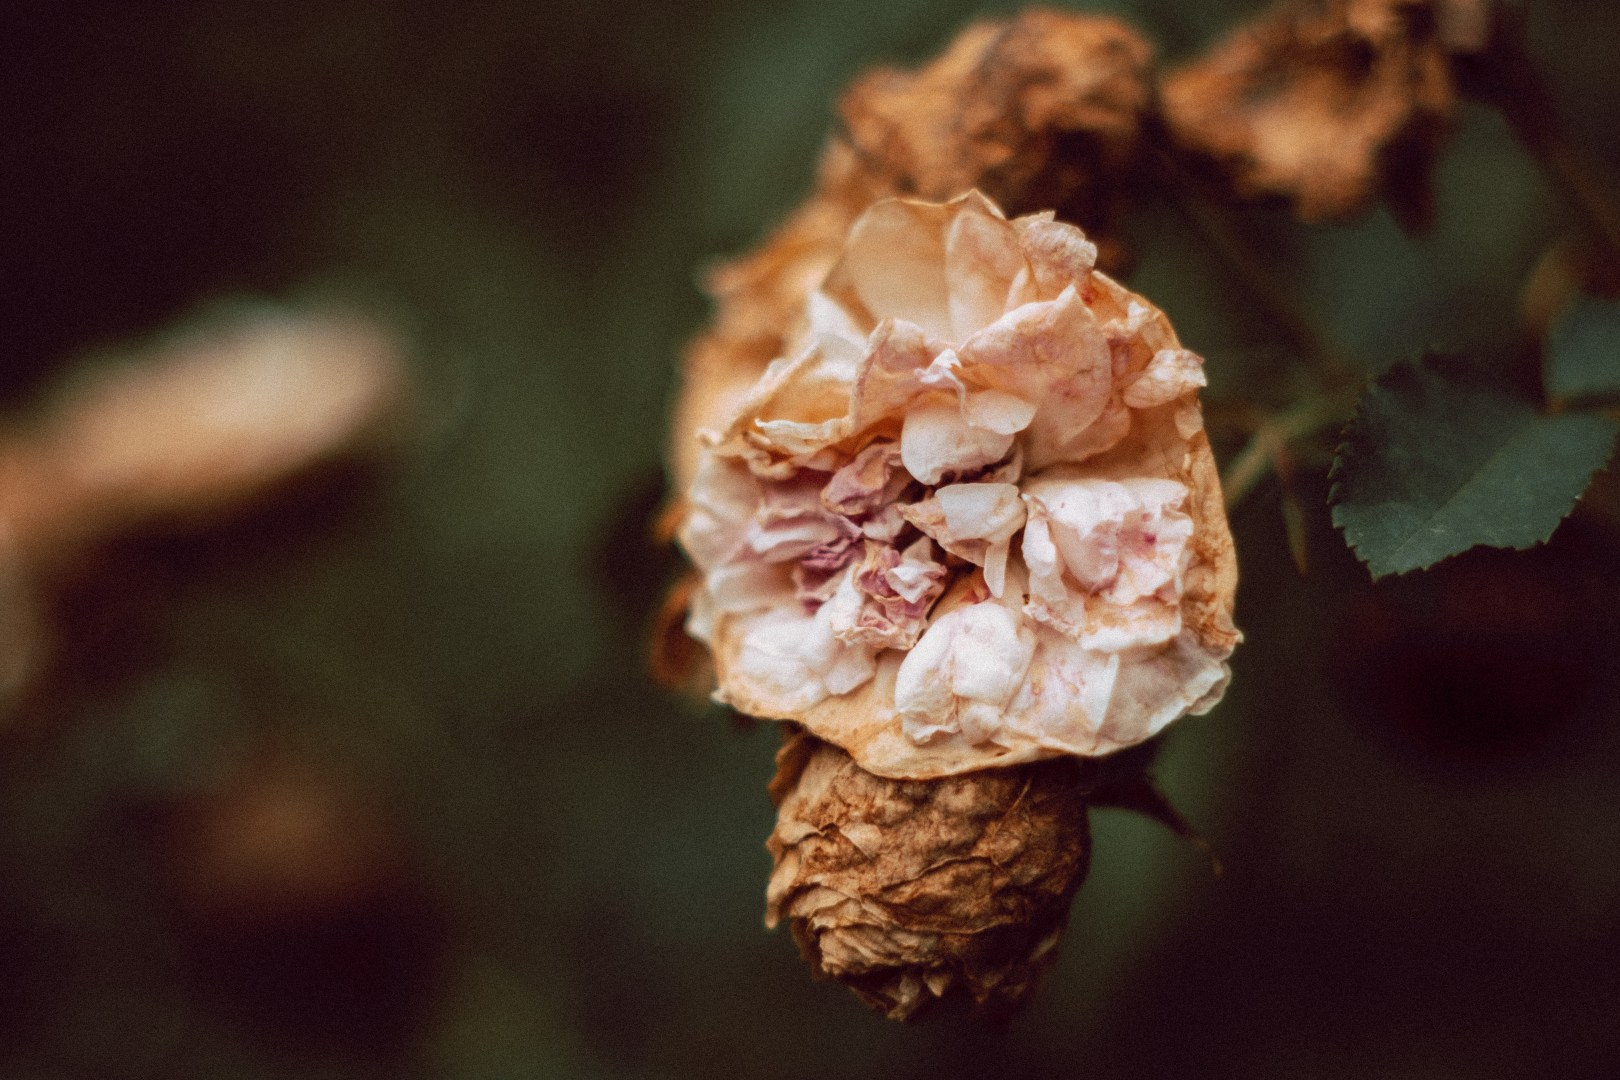 A photo of Dying Rose Plant